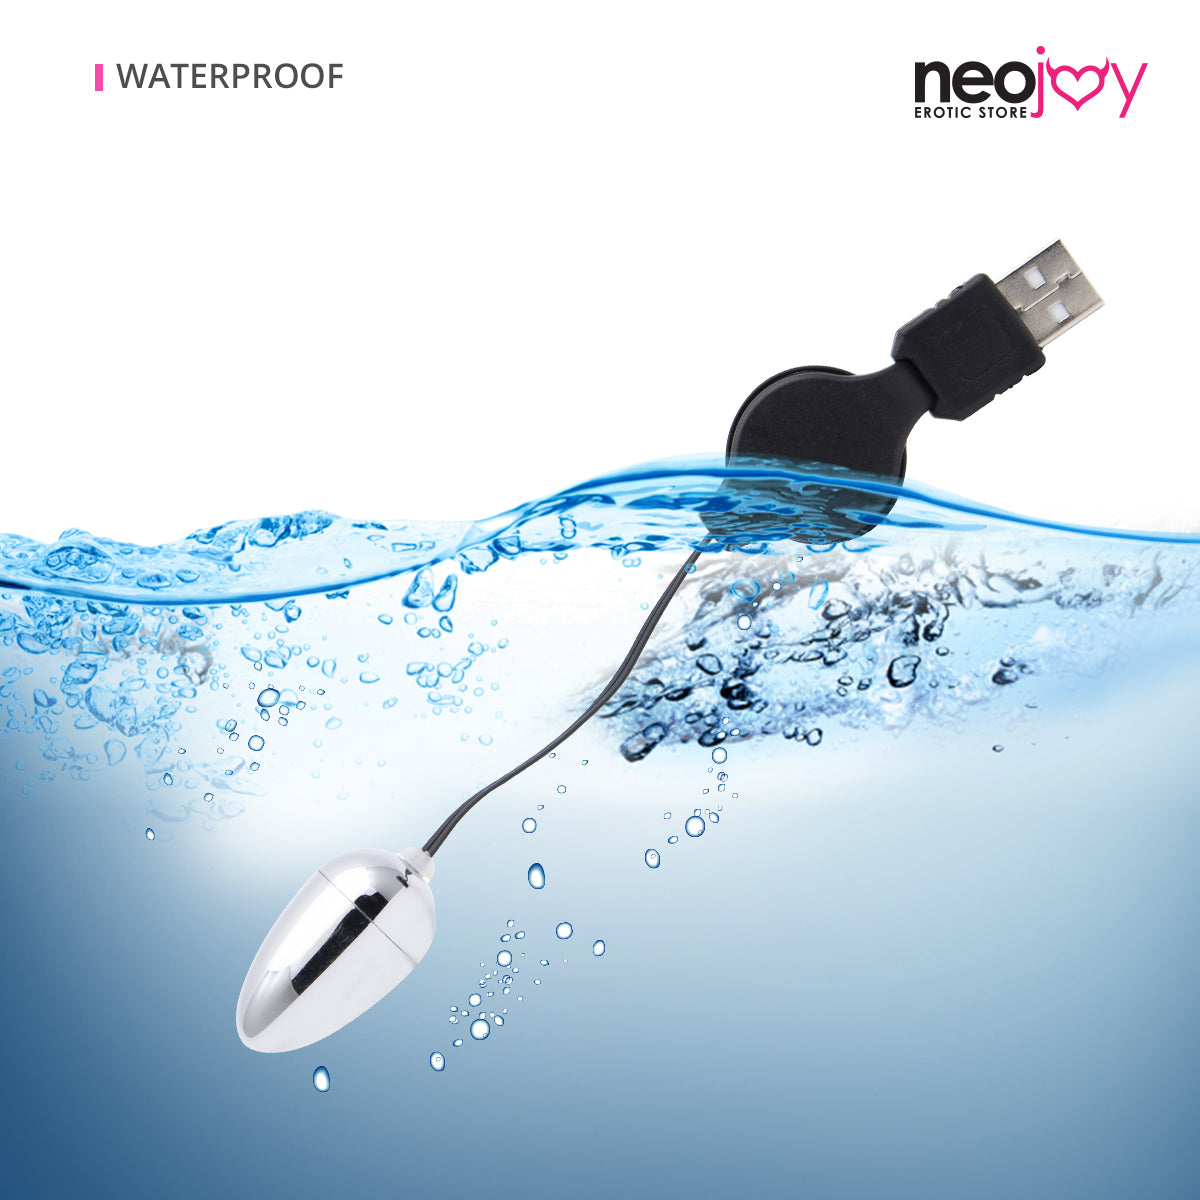 Neojoy Small Silver Bullet - USB Plug Bullet Vibrator - Clitoral Anal Vaginal Stimulation - Spring-back Wire Adult Sex Toy